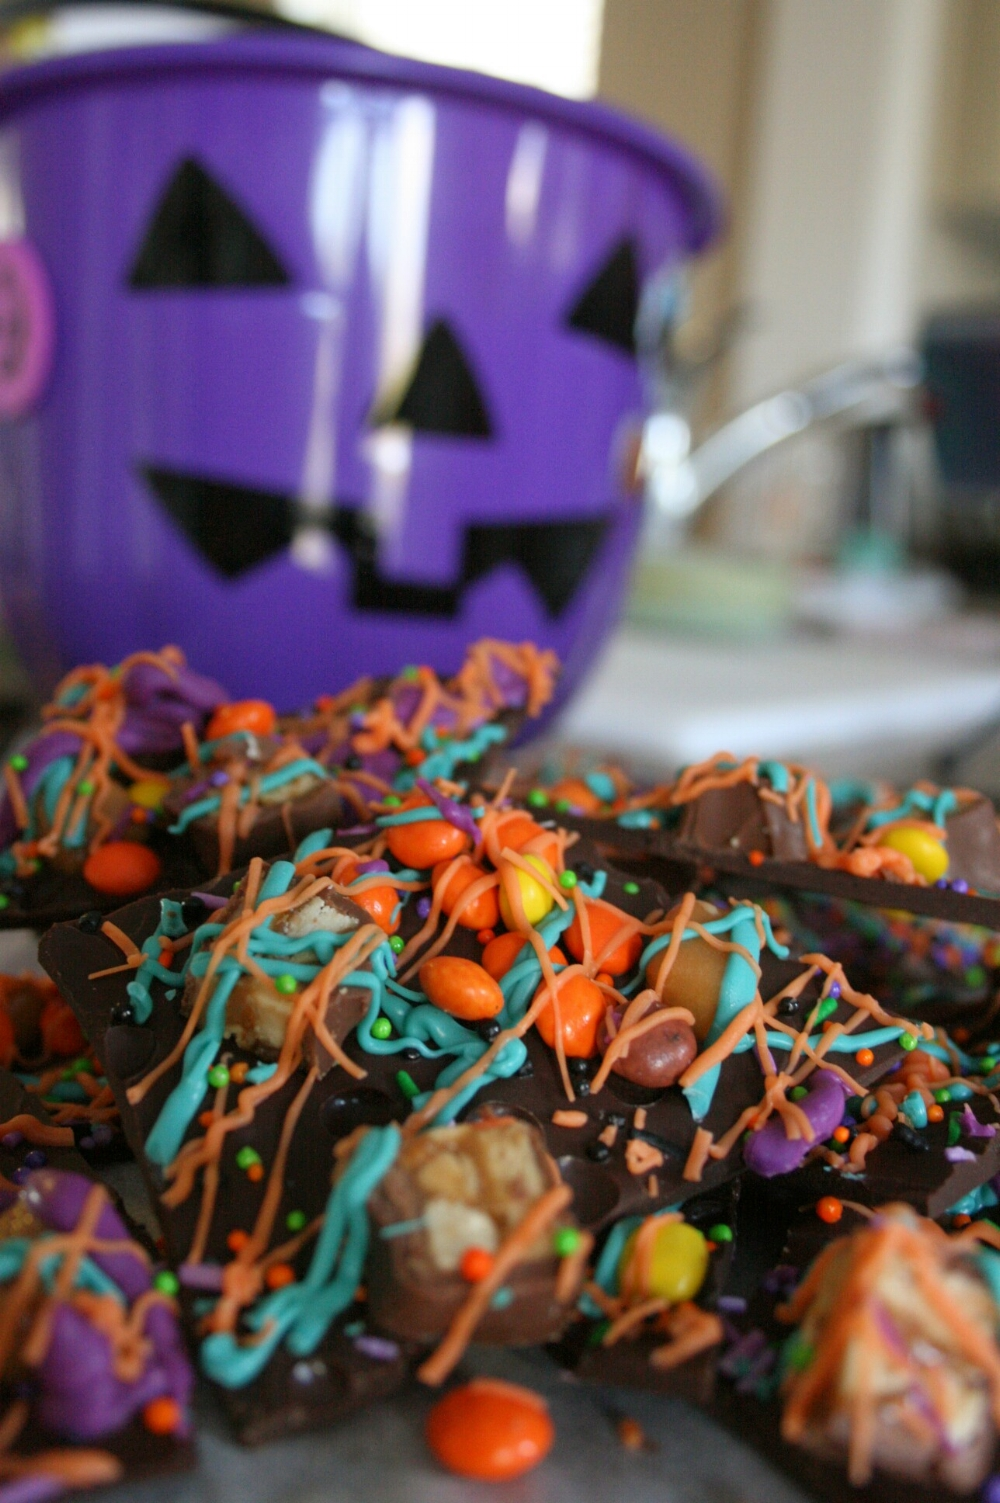 Recipe for a fun and festive Halloween treat! This chocolatey bark is simple to make and great to create with the kids. From TheBakeSite.com